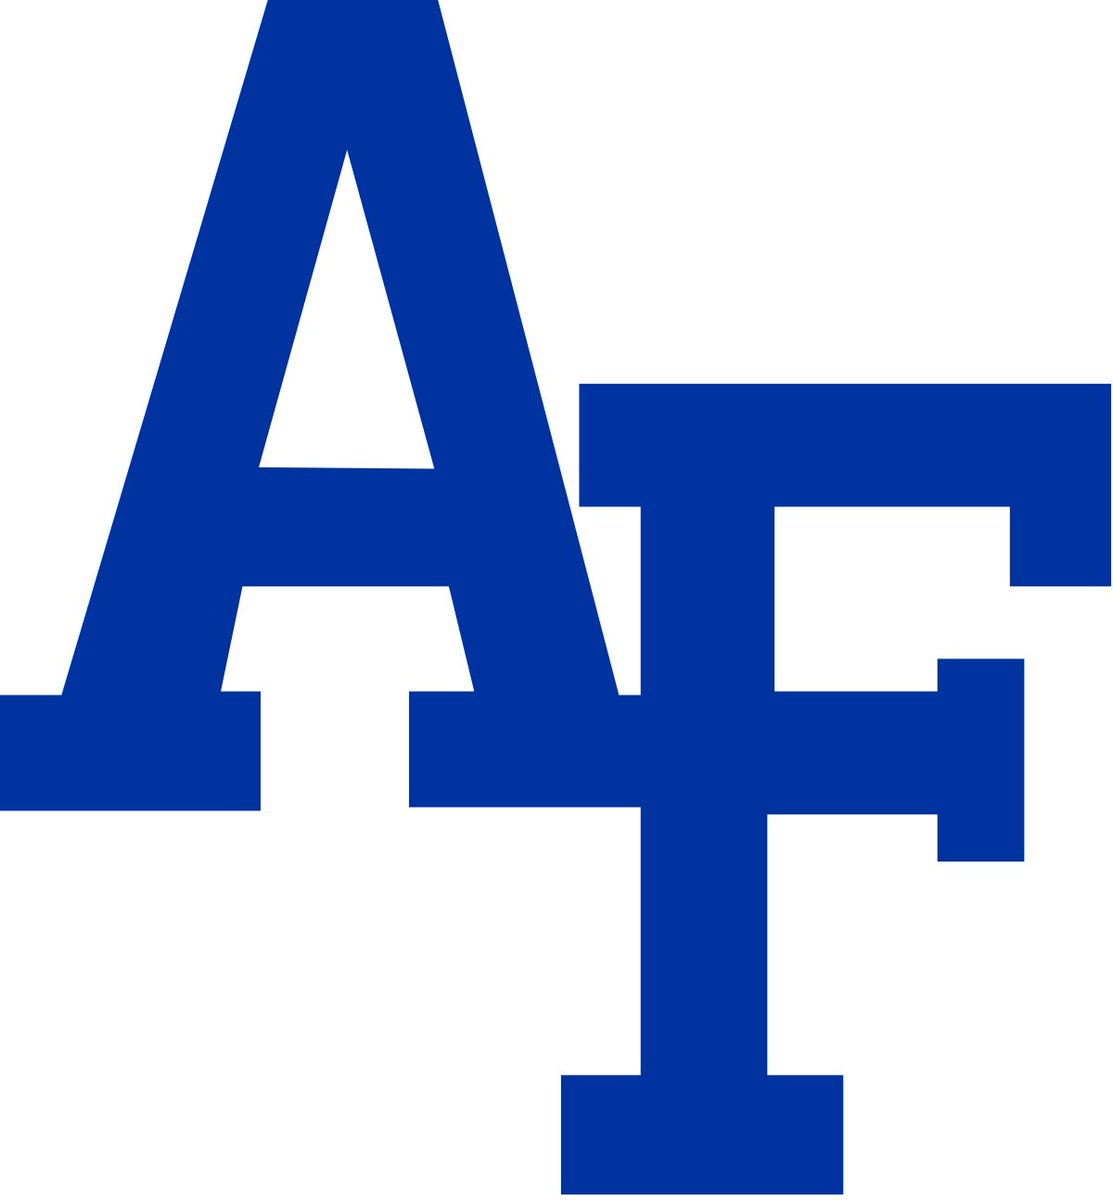 Blessed to receive an offer from the Air Force Academy @GaffneyFootball @Coach_CVaughn